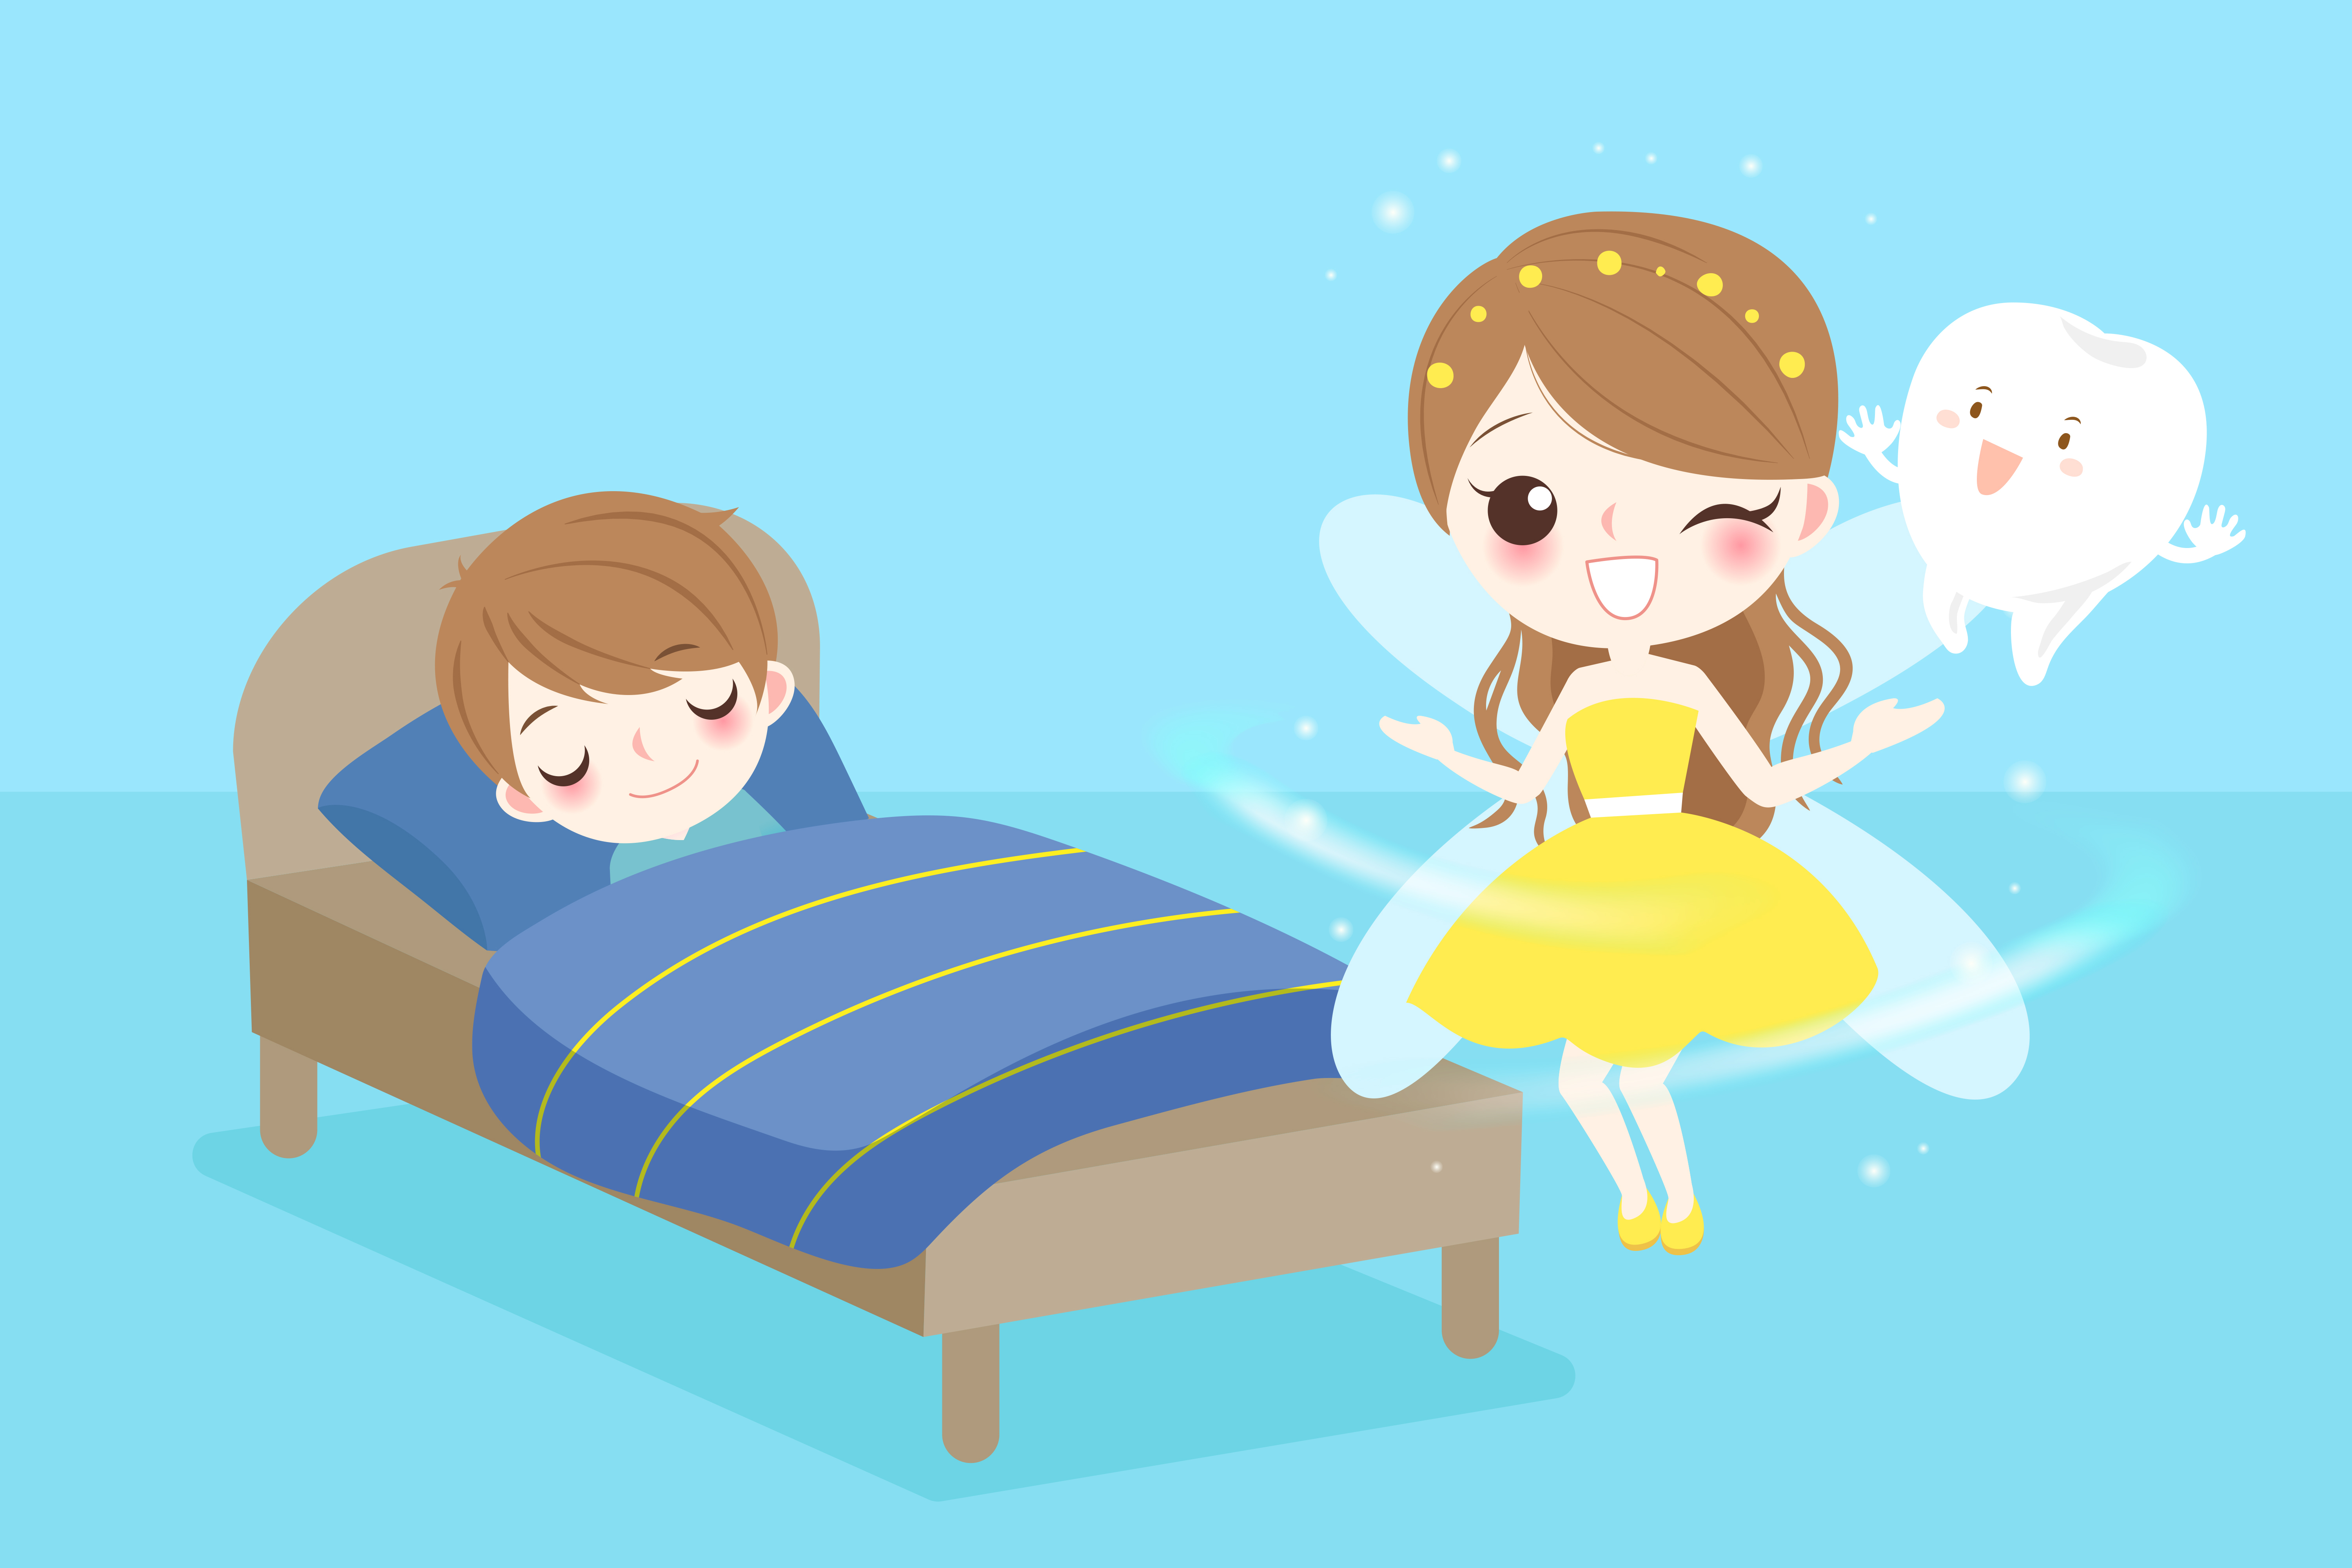 illustration of the tooth fairy coming to a little boy sleeping